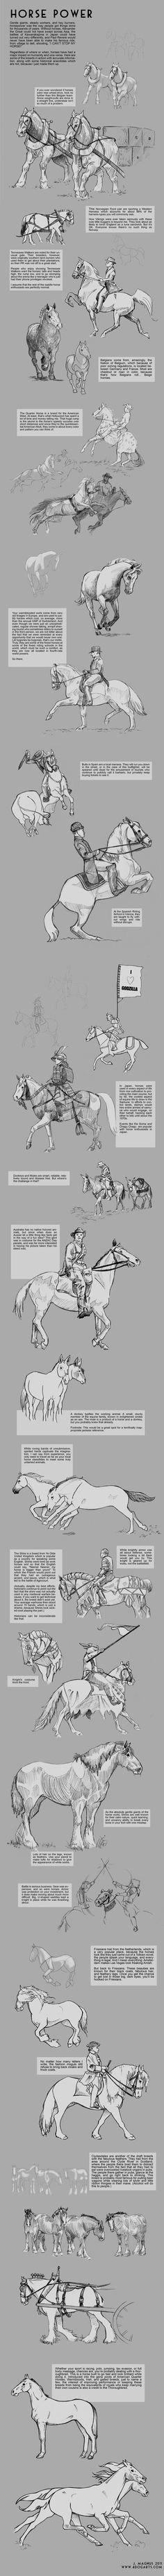 Horse Power Tutorial by sketcherjak.deviantart.com on @deviantART